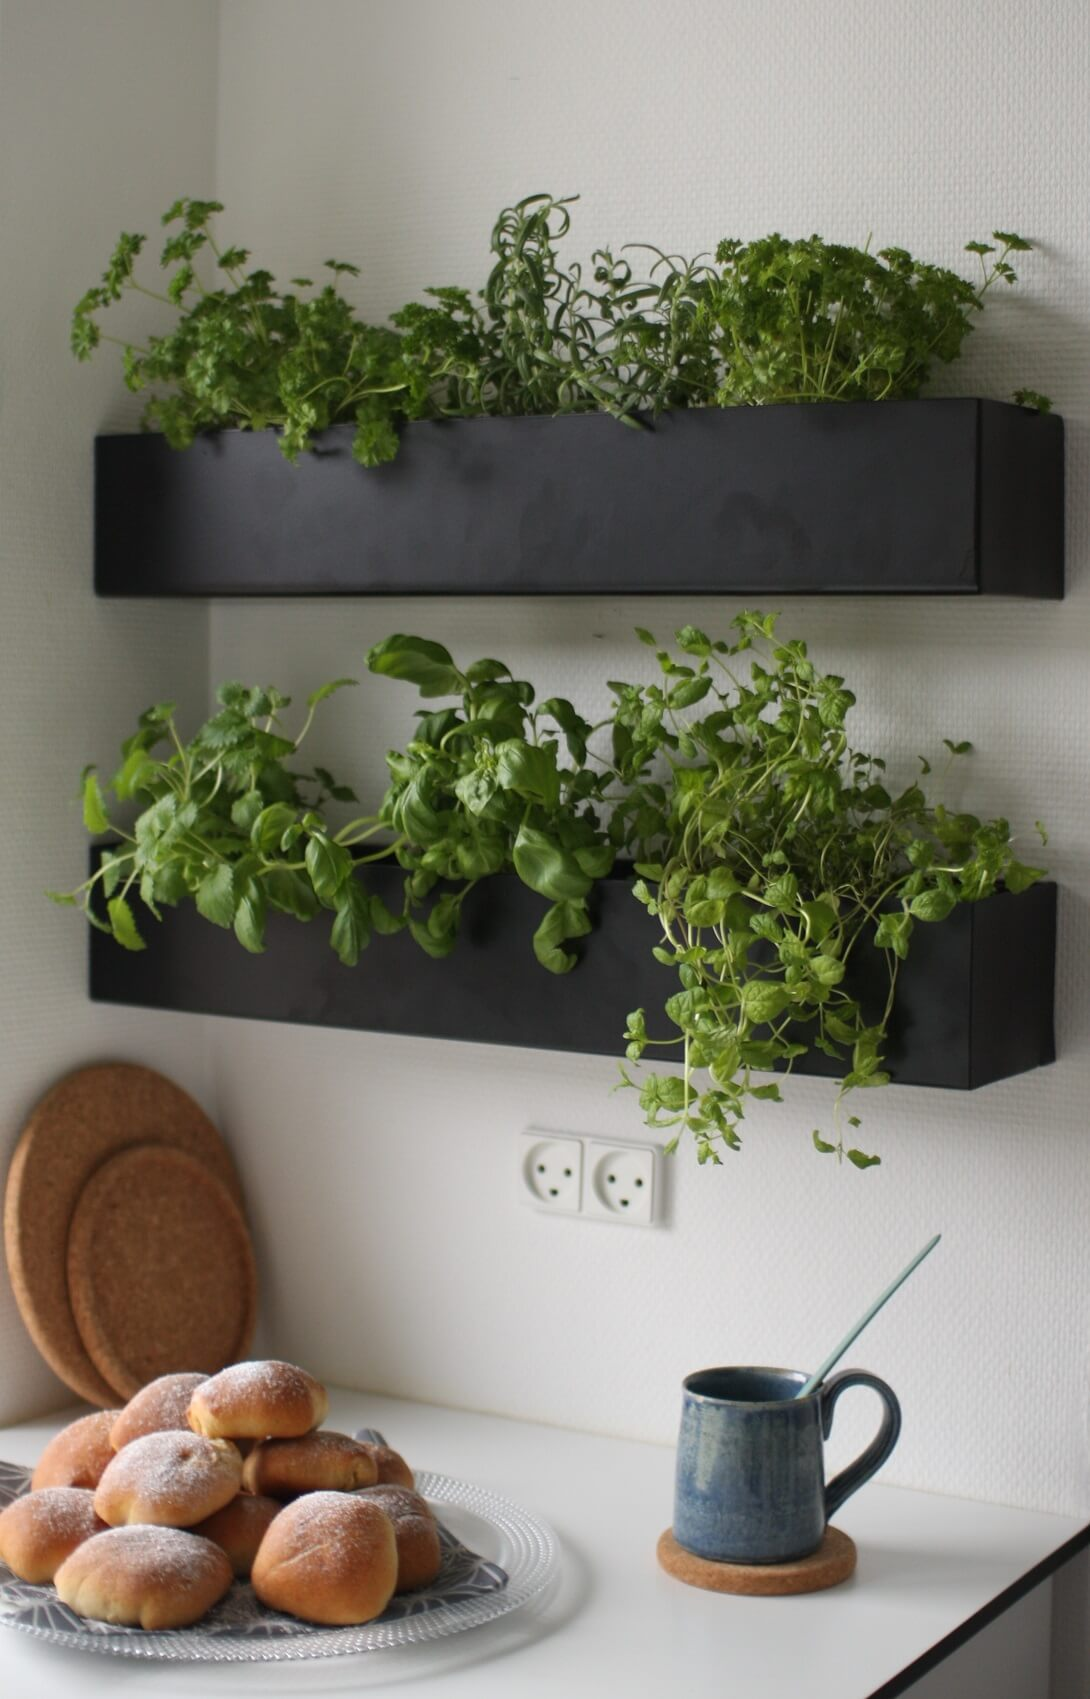 kitchen-wall-decor-ideas Another hanging garden, but simpler this time